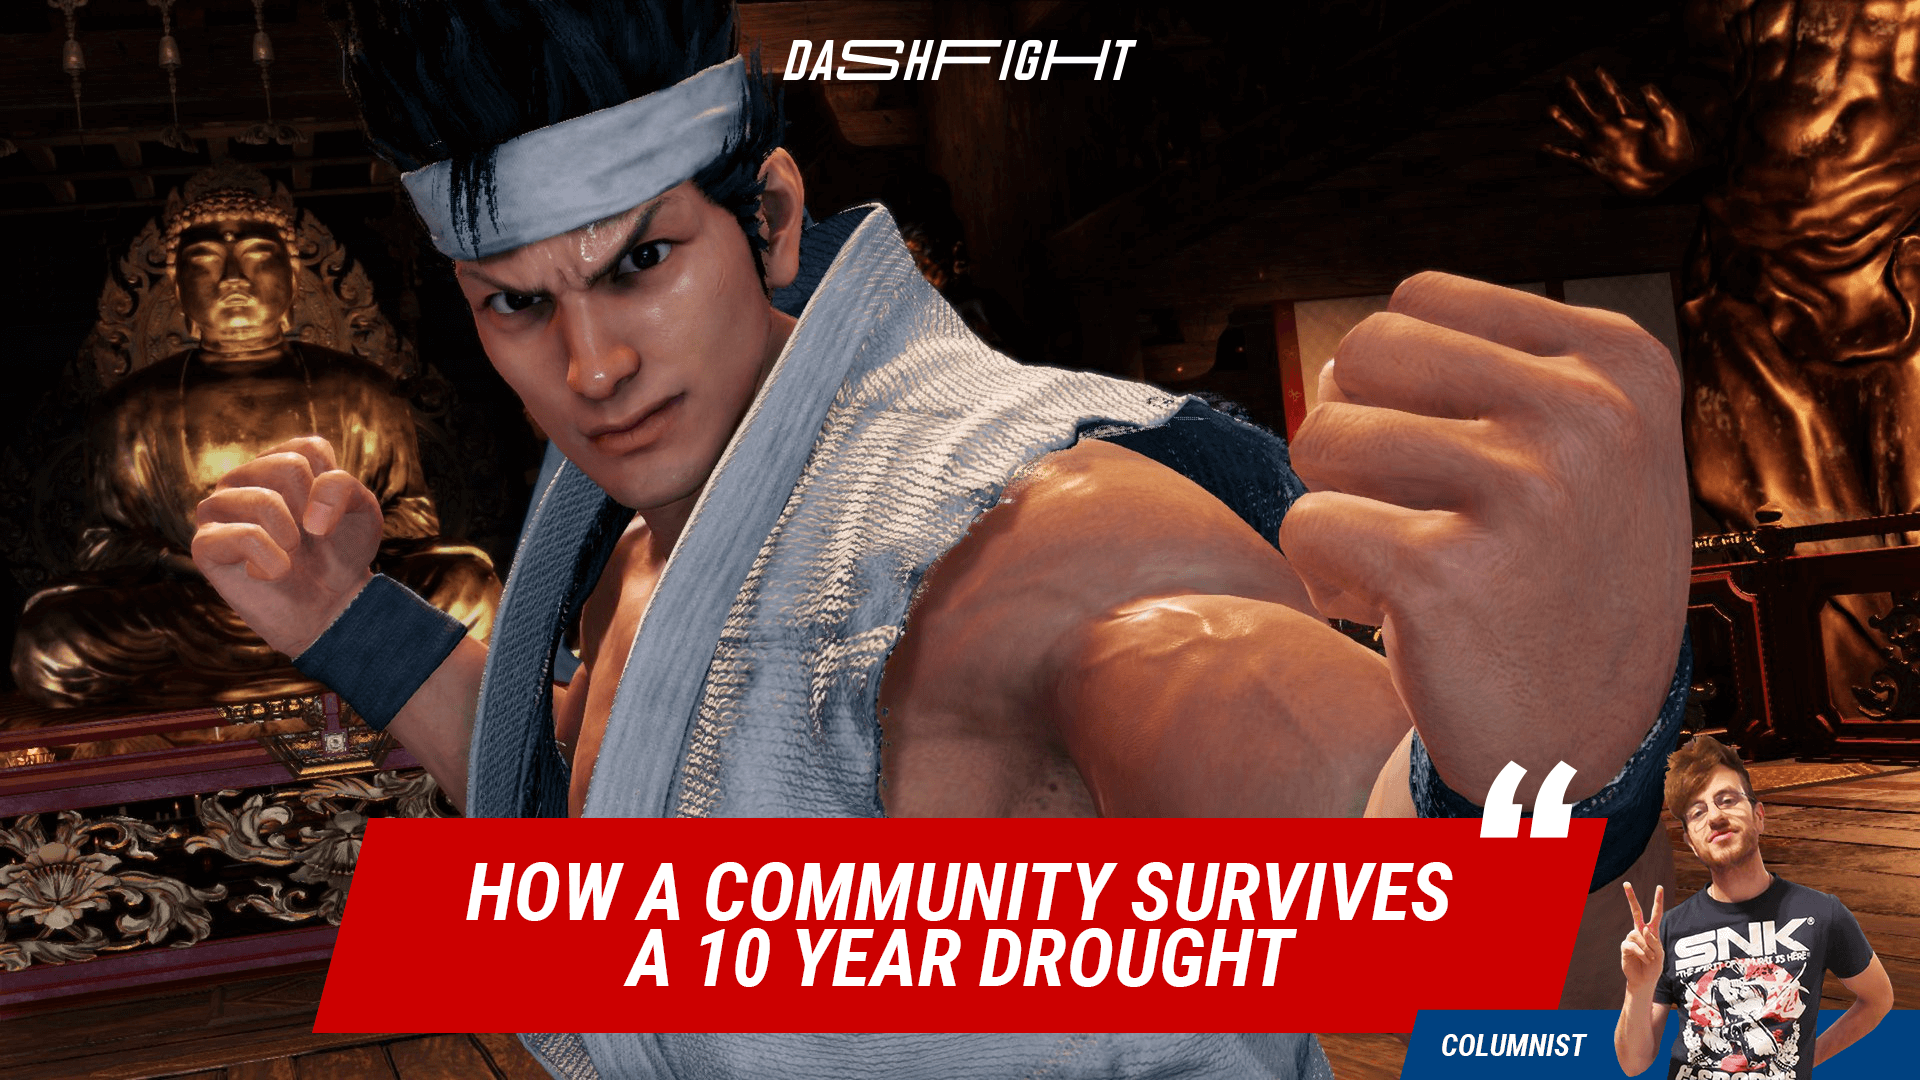 Virtua Fighter 5: How A Community Survives A 10 Year Drought